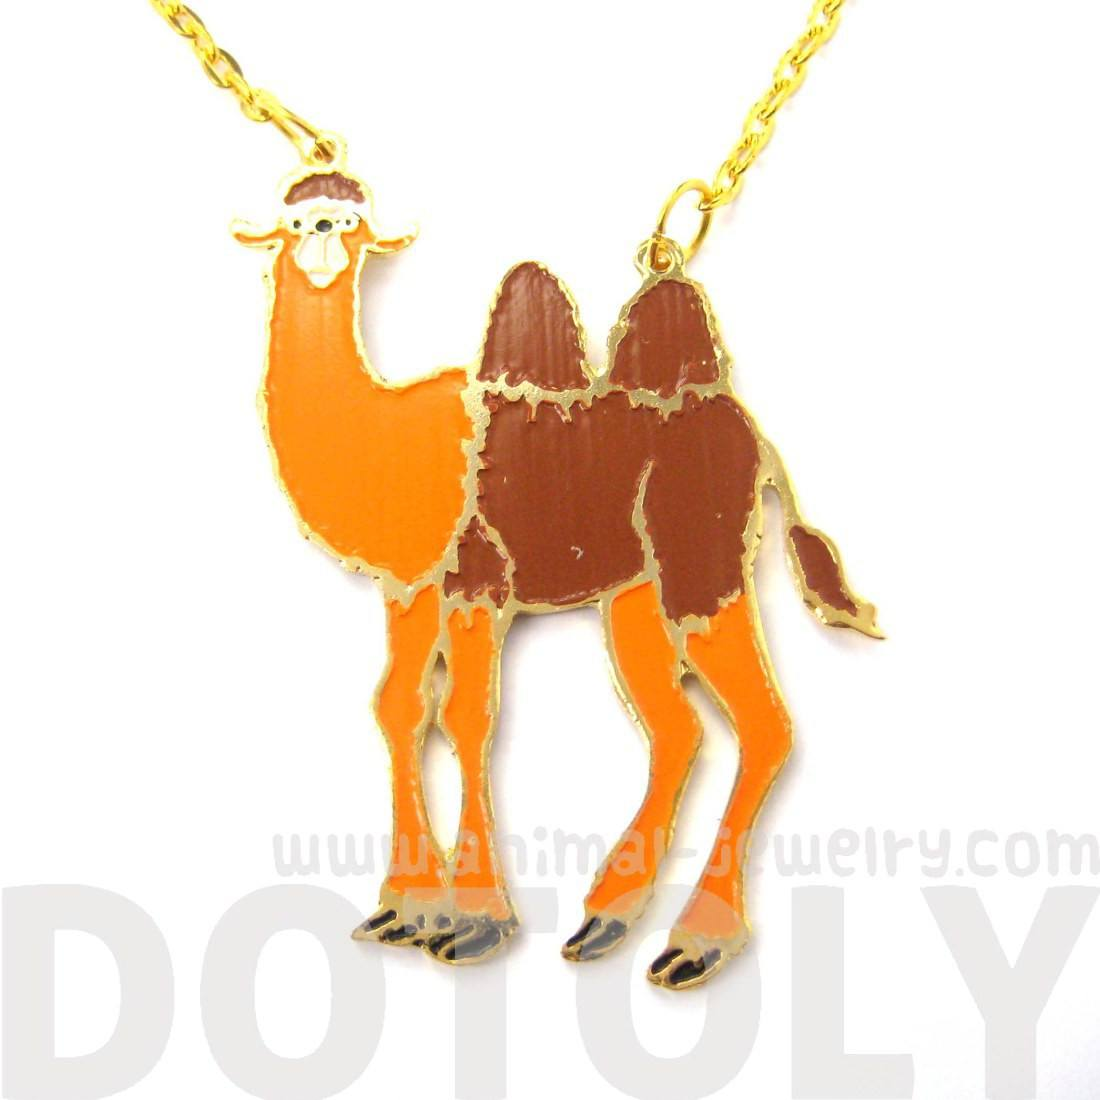 Camel Shaped Animal Cartoon Enamel Pendant Necklace | Limited Edition